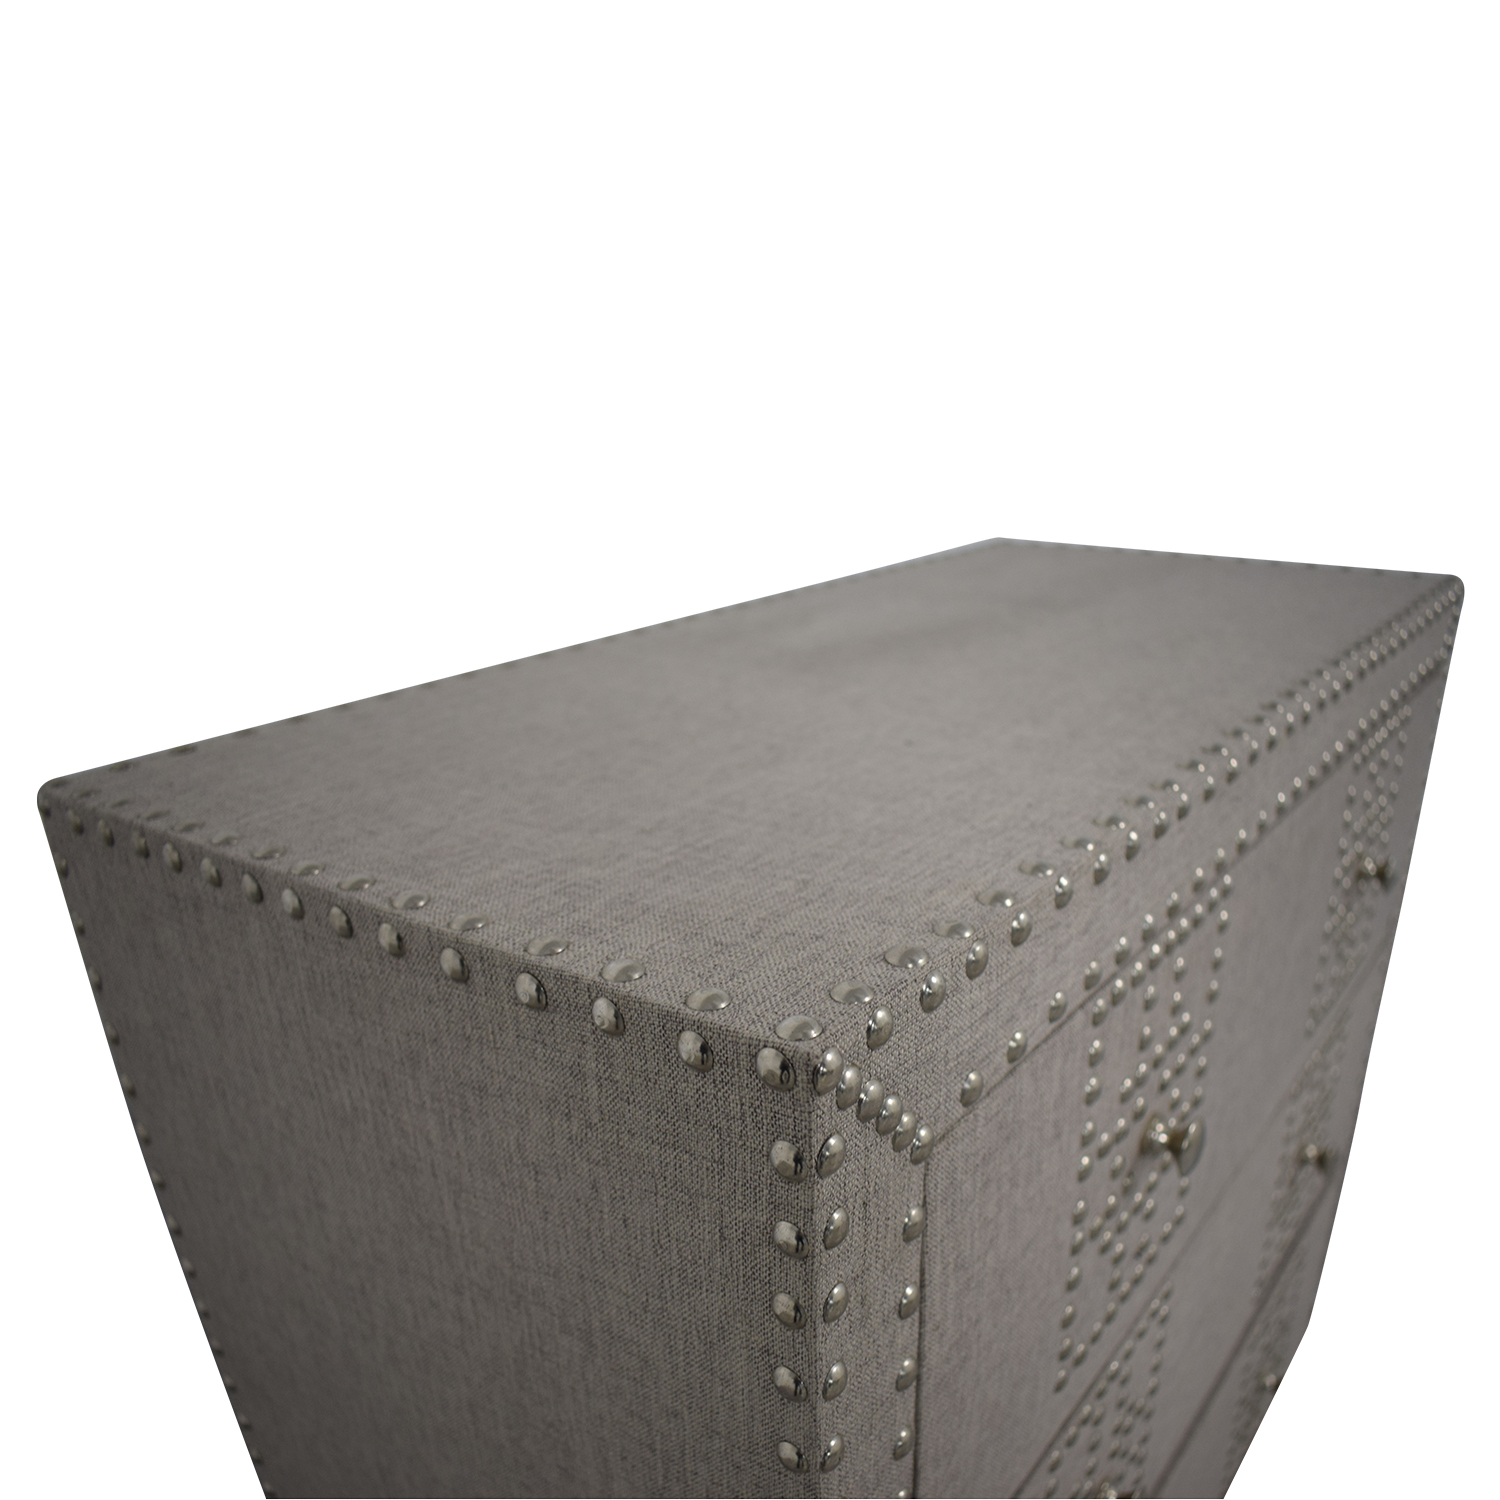 Wayfair Wayfair Gordy Grey Upholstered Nailhead Three-Drawer Dresser